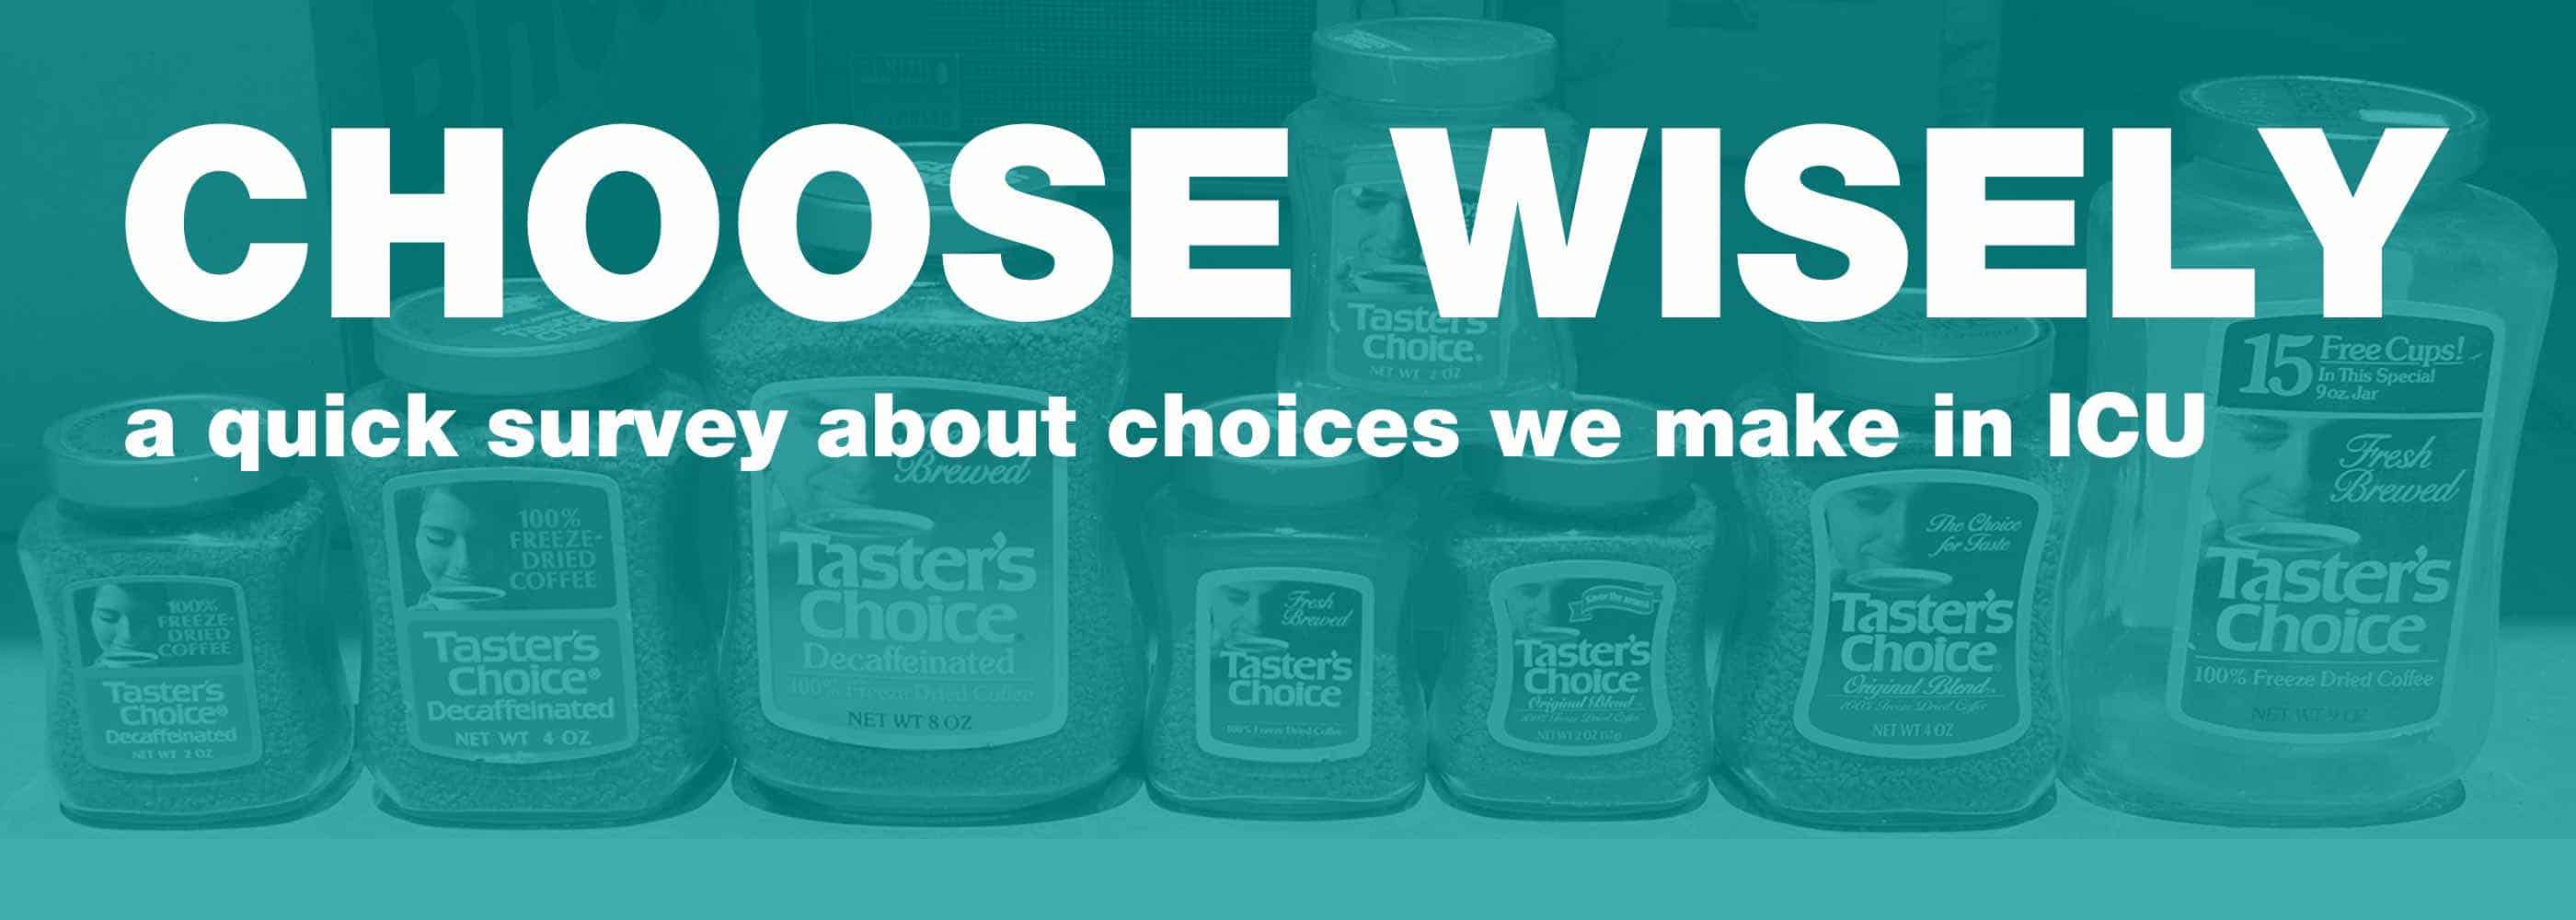 choose wisely quick survey about choices made in icu intensive